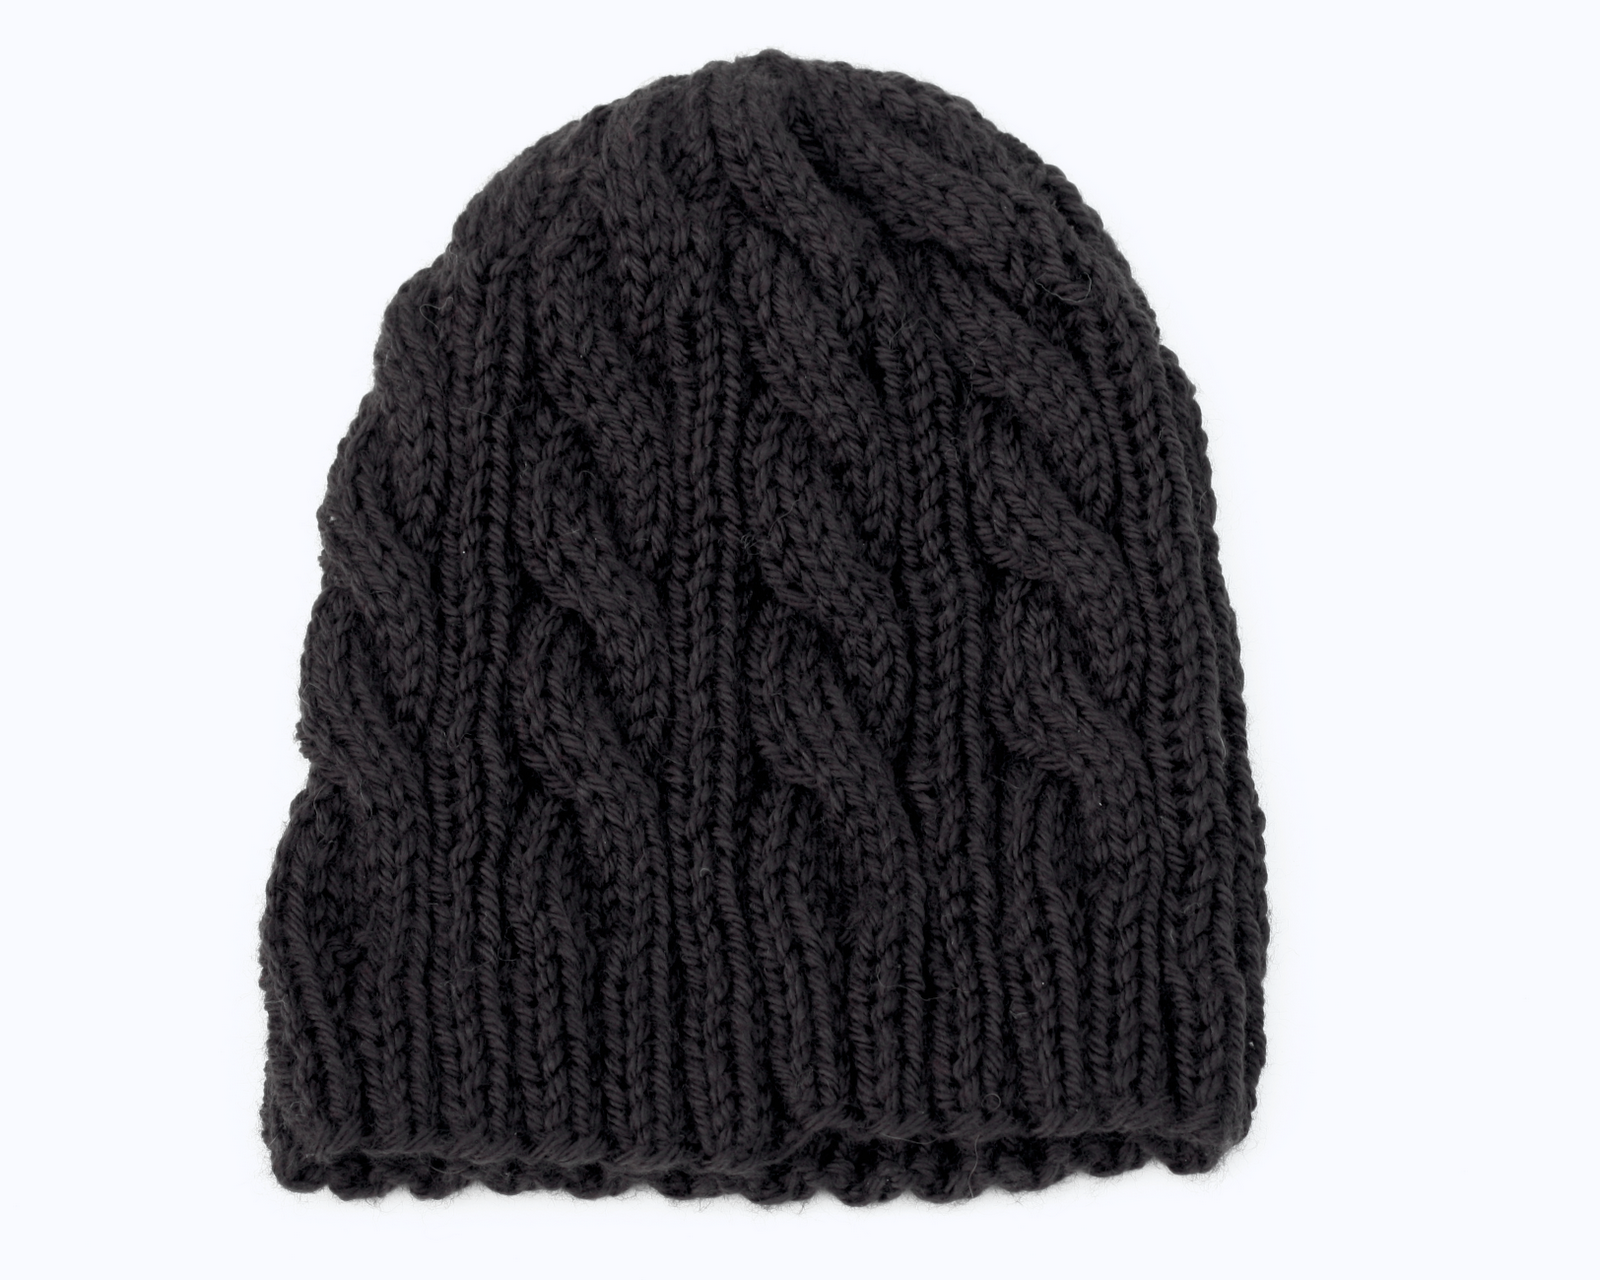 Knitting Pattern For Basic Beanie : Living the Creative Life: Classic Knit Beanies